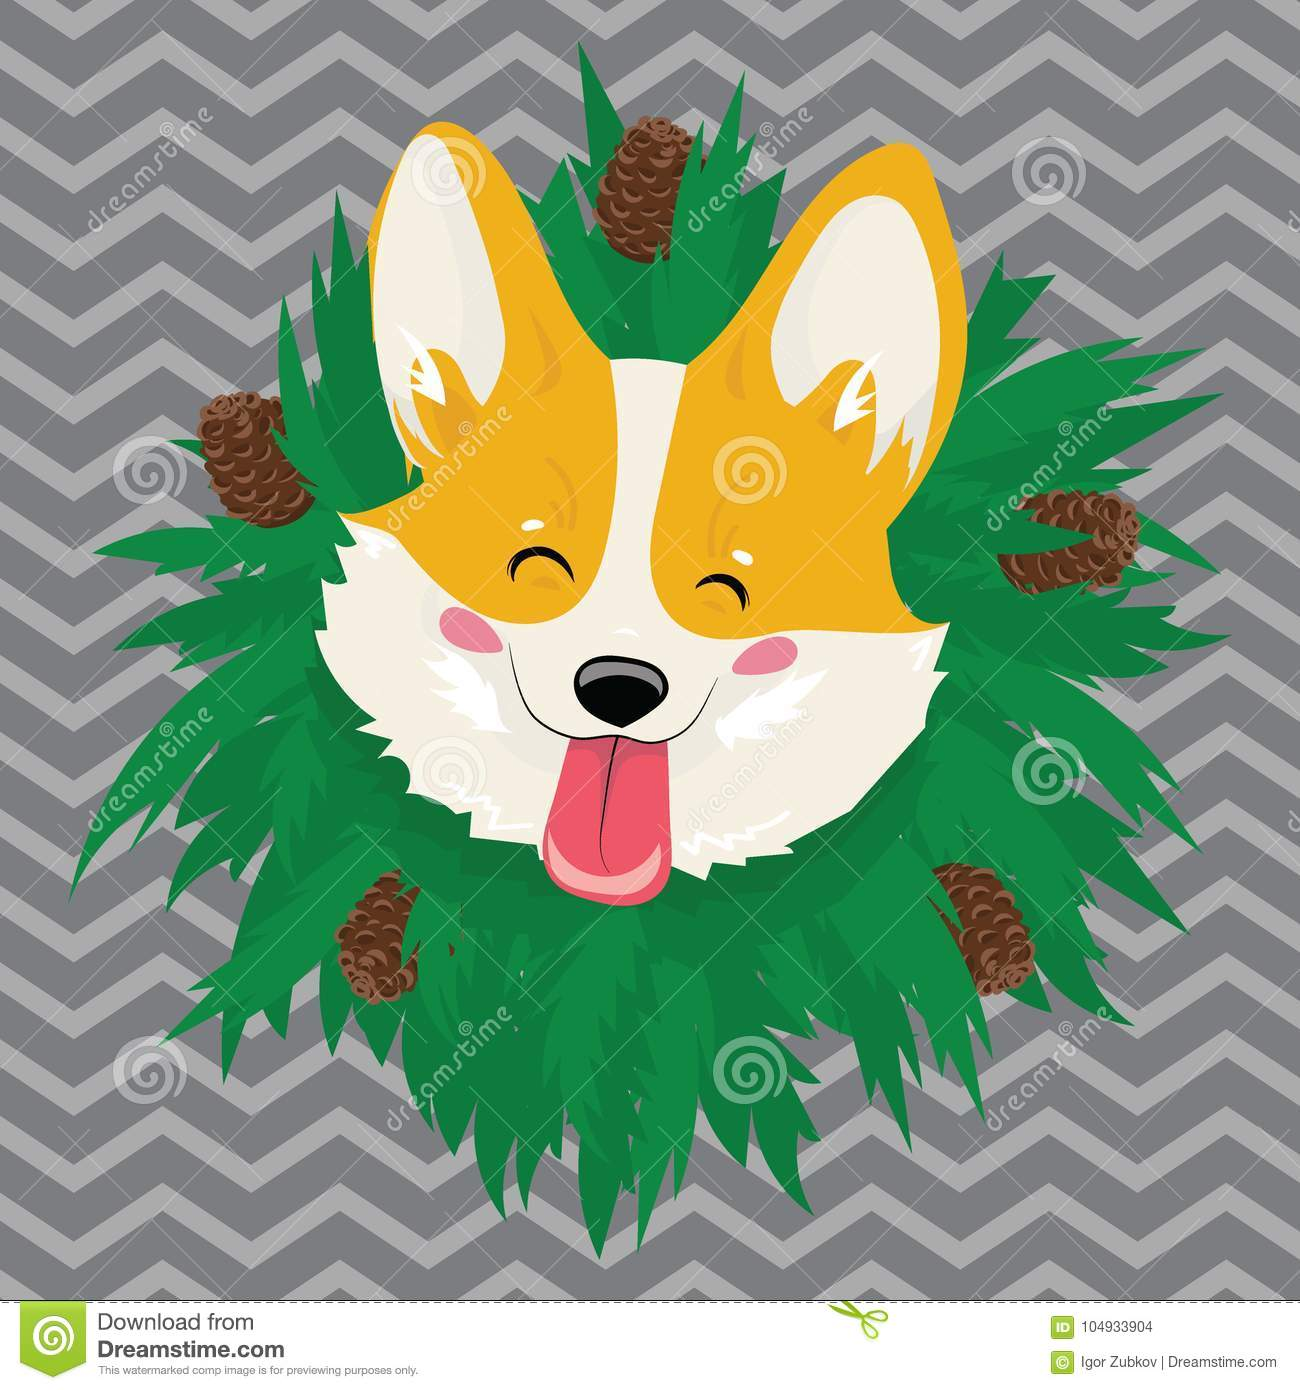 Cartoon portrait of a dog with a wreath. Christmas cute dog. The symbol of the year. Vector illustration for a greeting